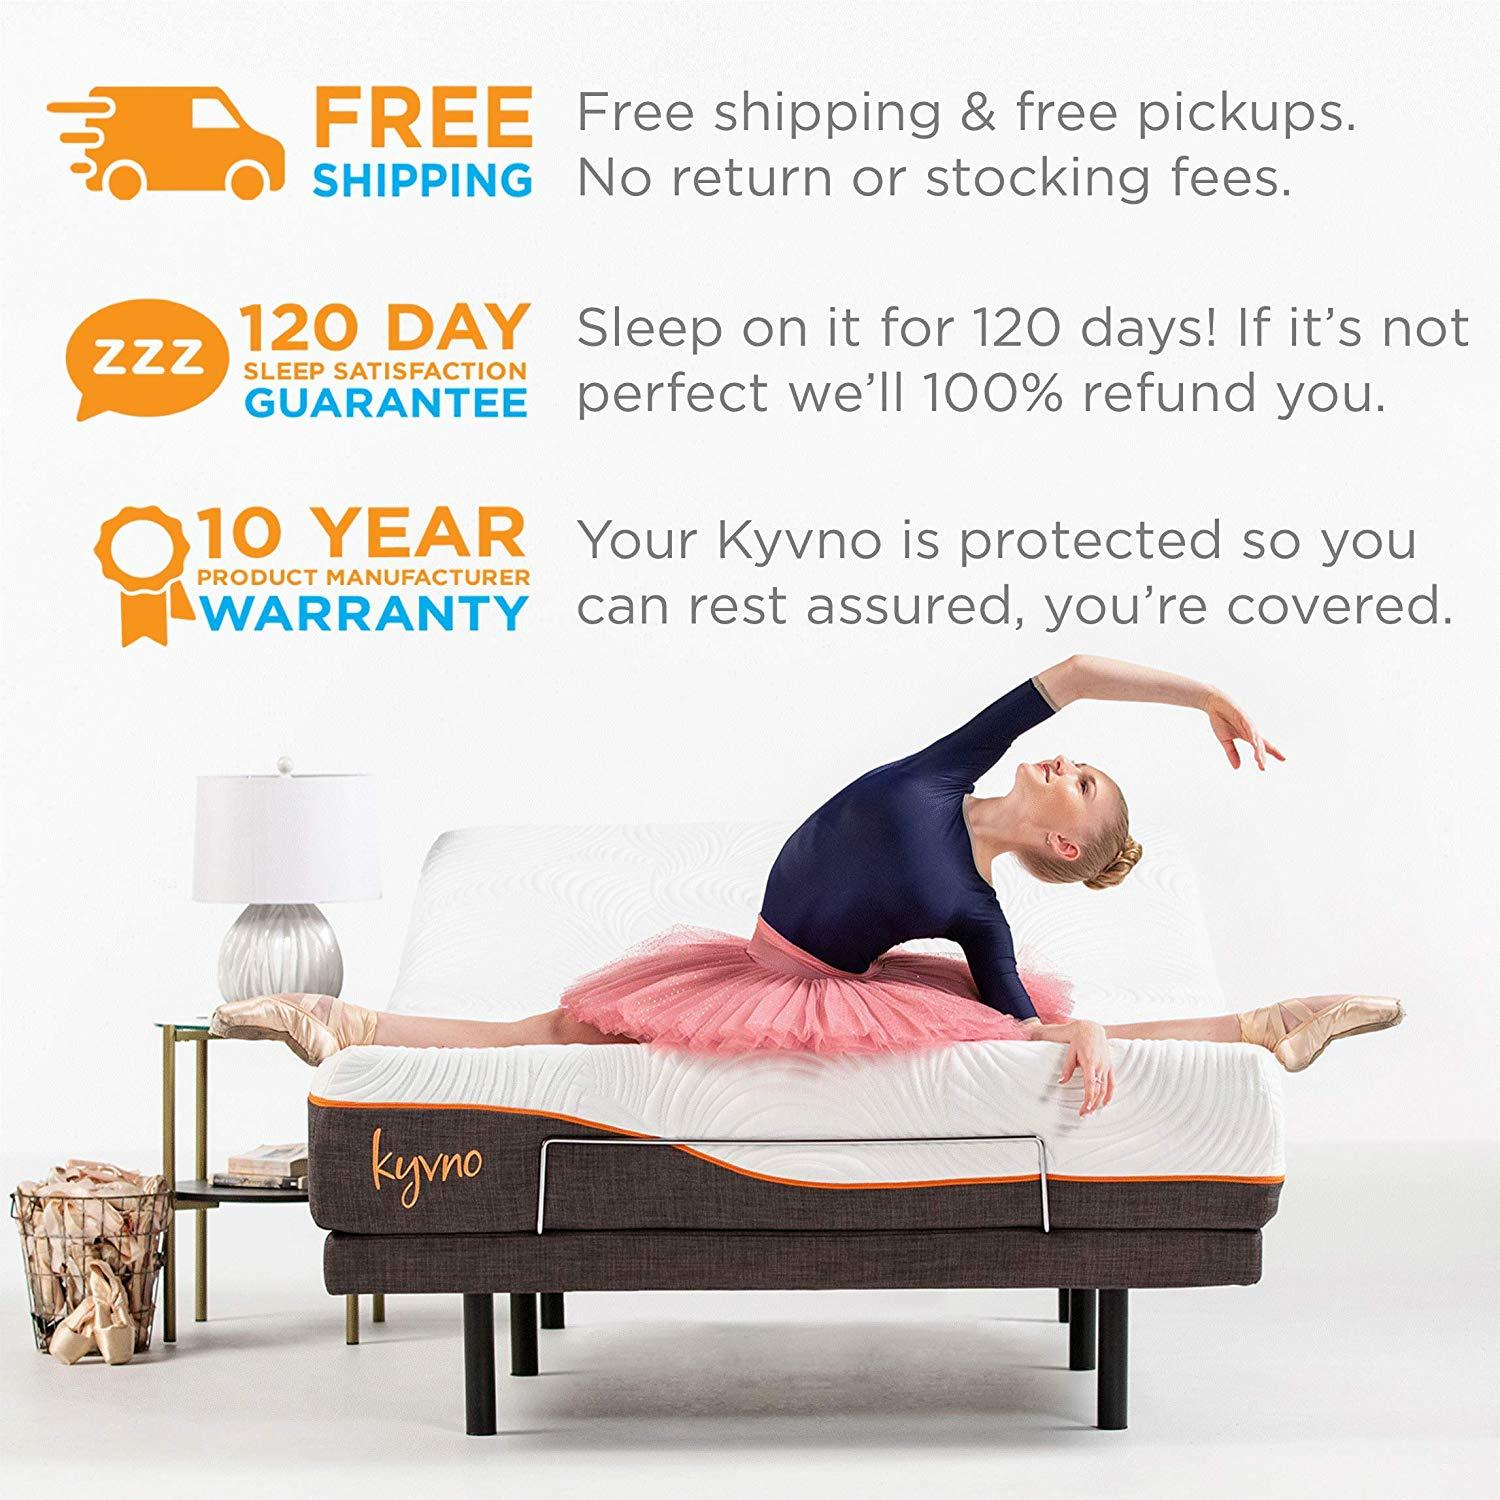 Kyvno Adjustable Bed Reviews - Warranty & Trial Period